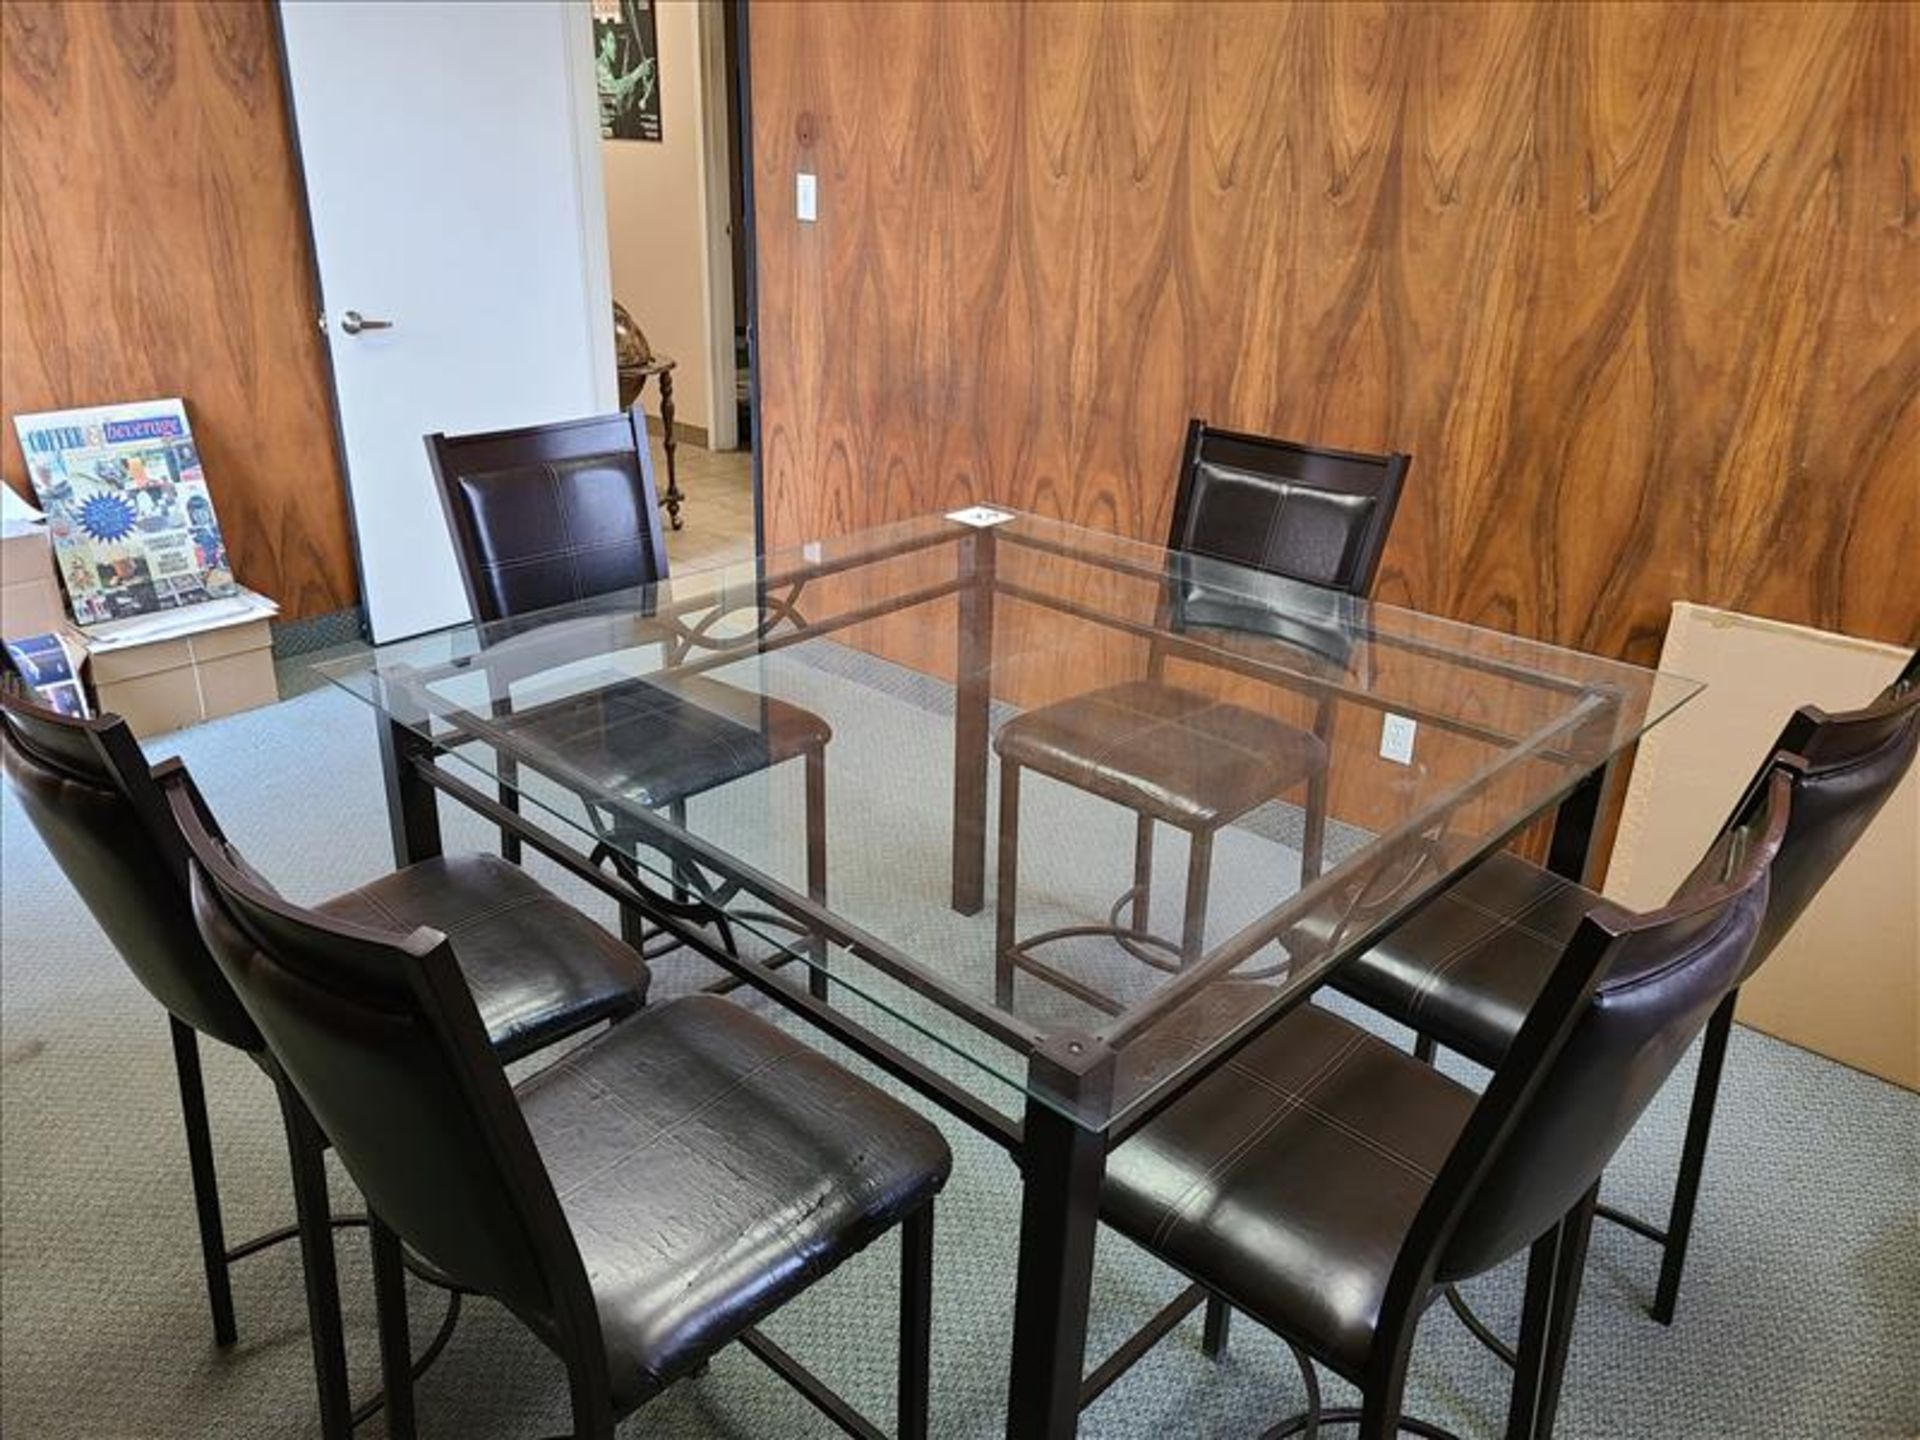 Glass Conference Table w/ Chairs - Image 2 of 2